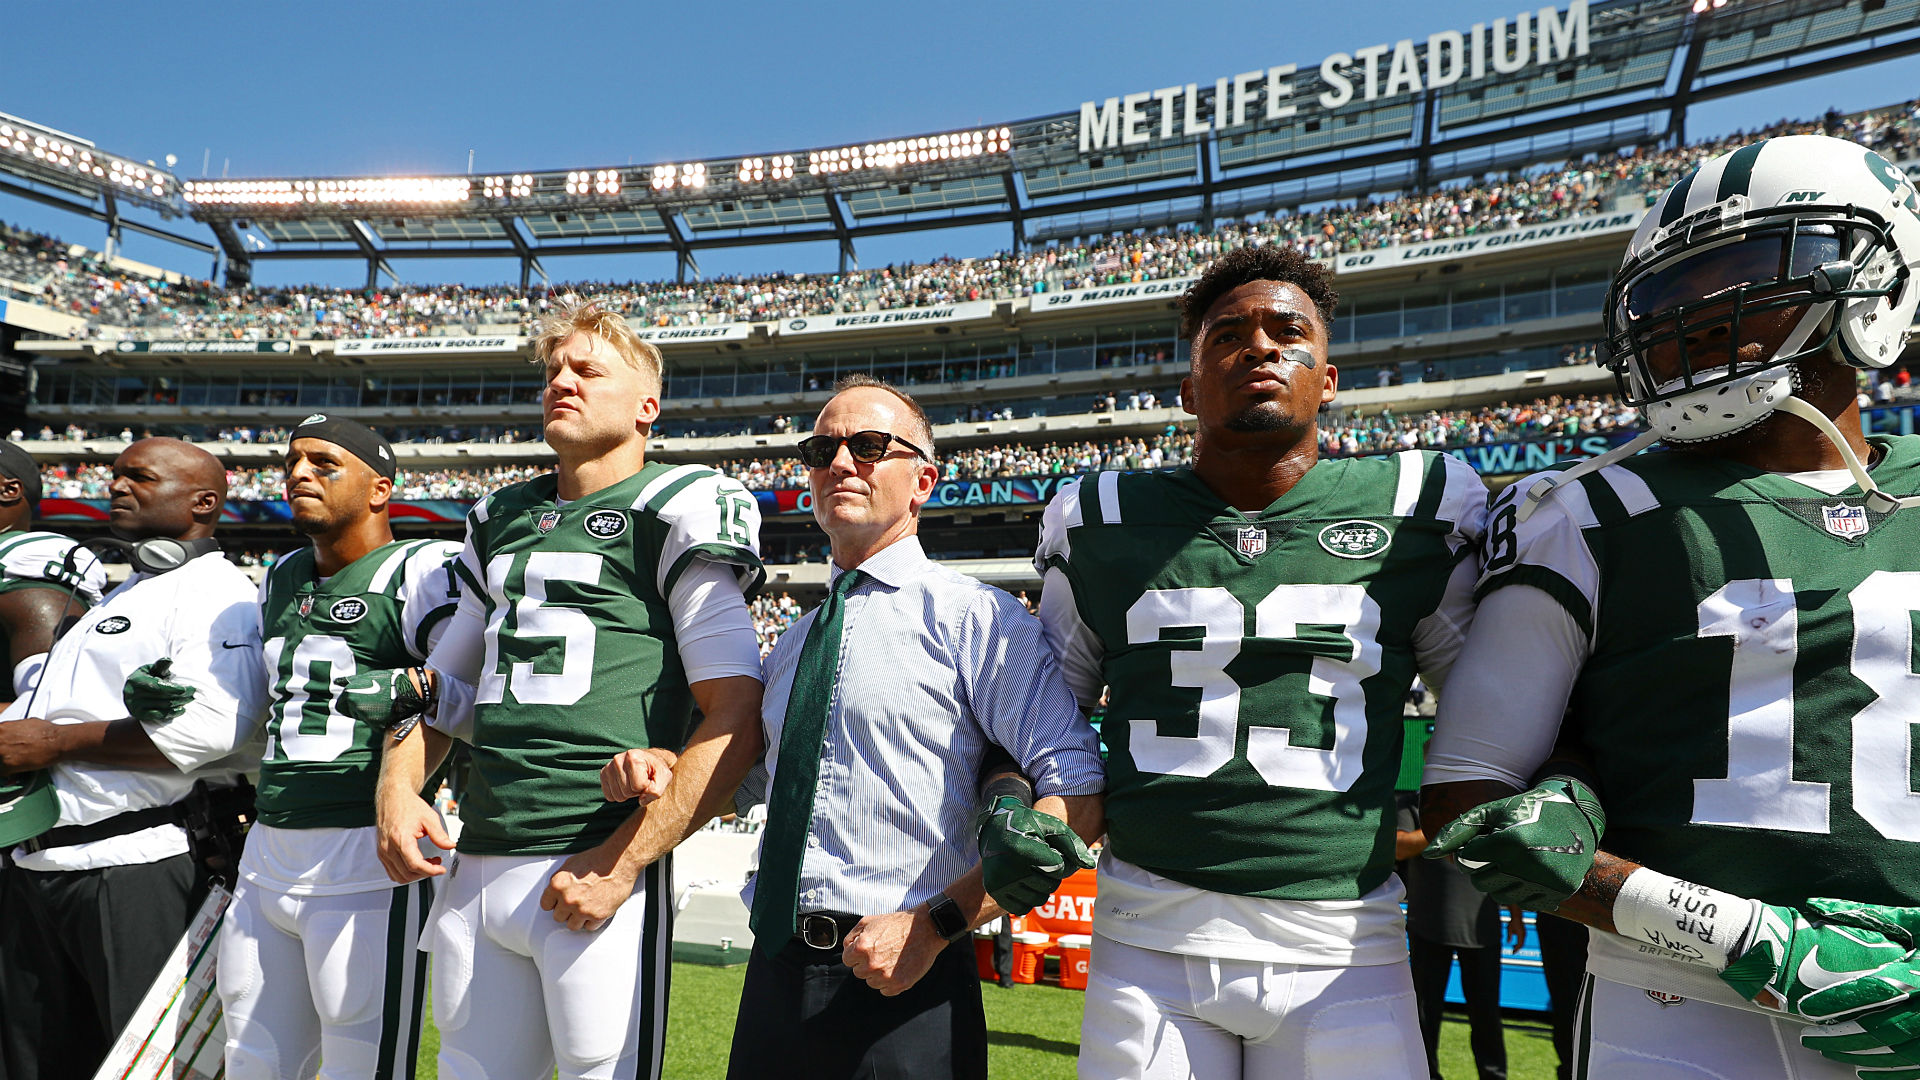 Congressman Peter King Calls Jets' Stance On National Anthem Protests 'Disgraceful'